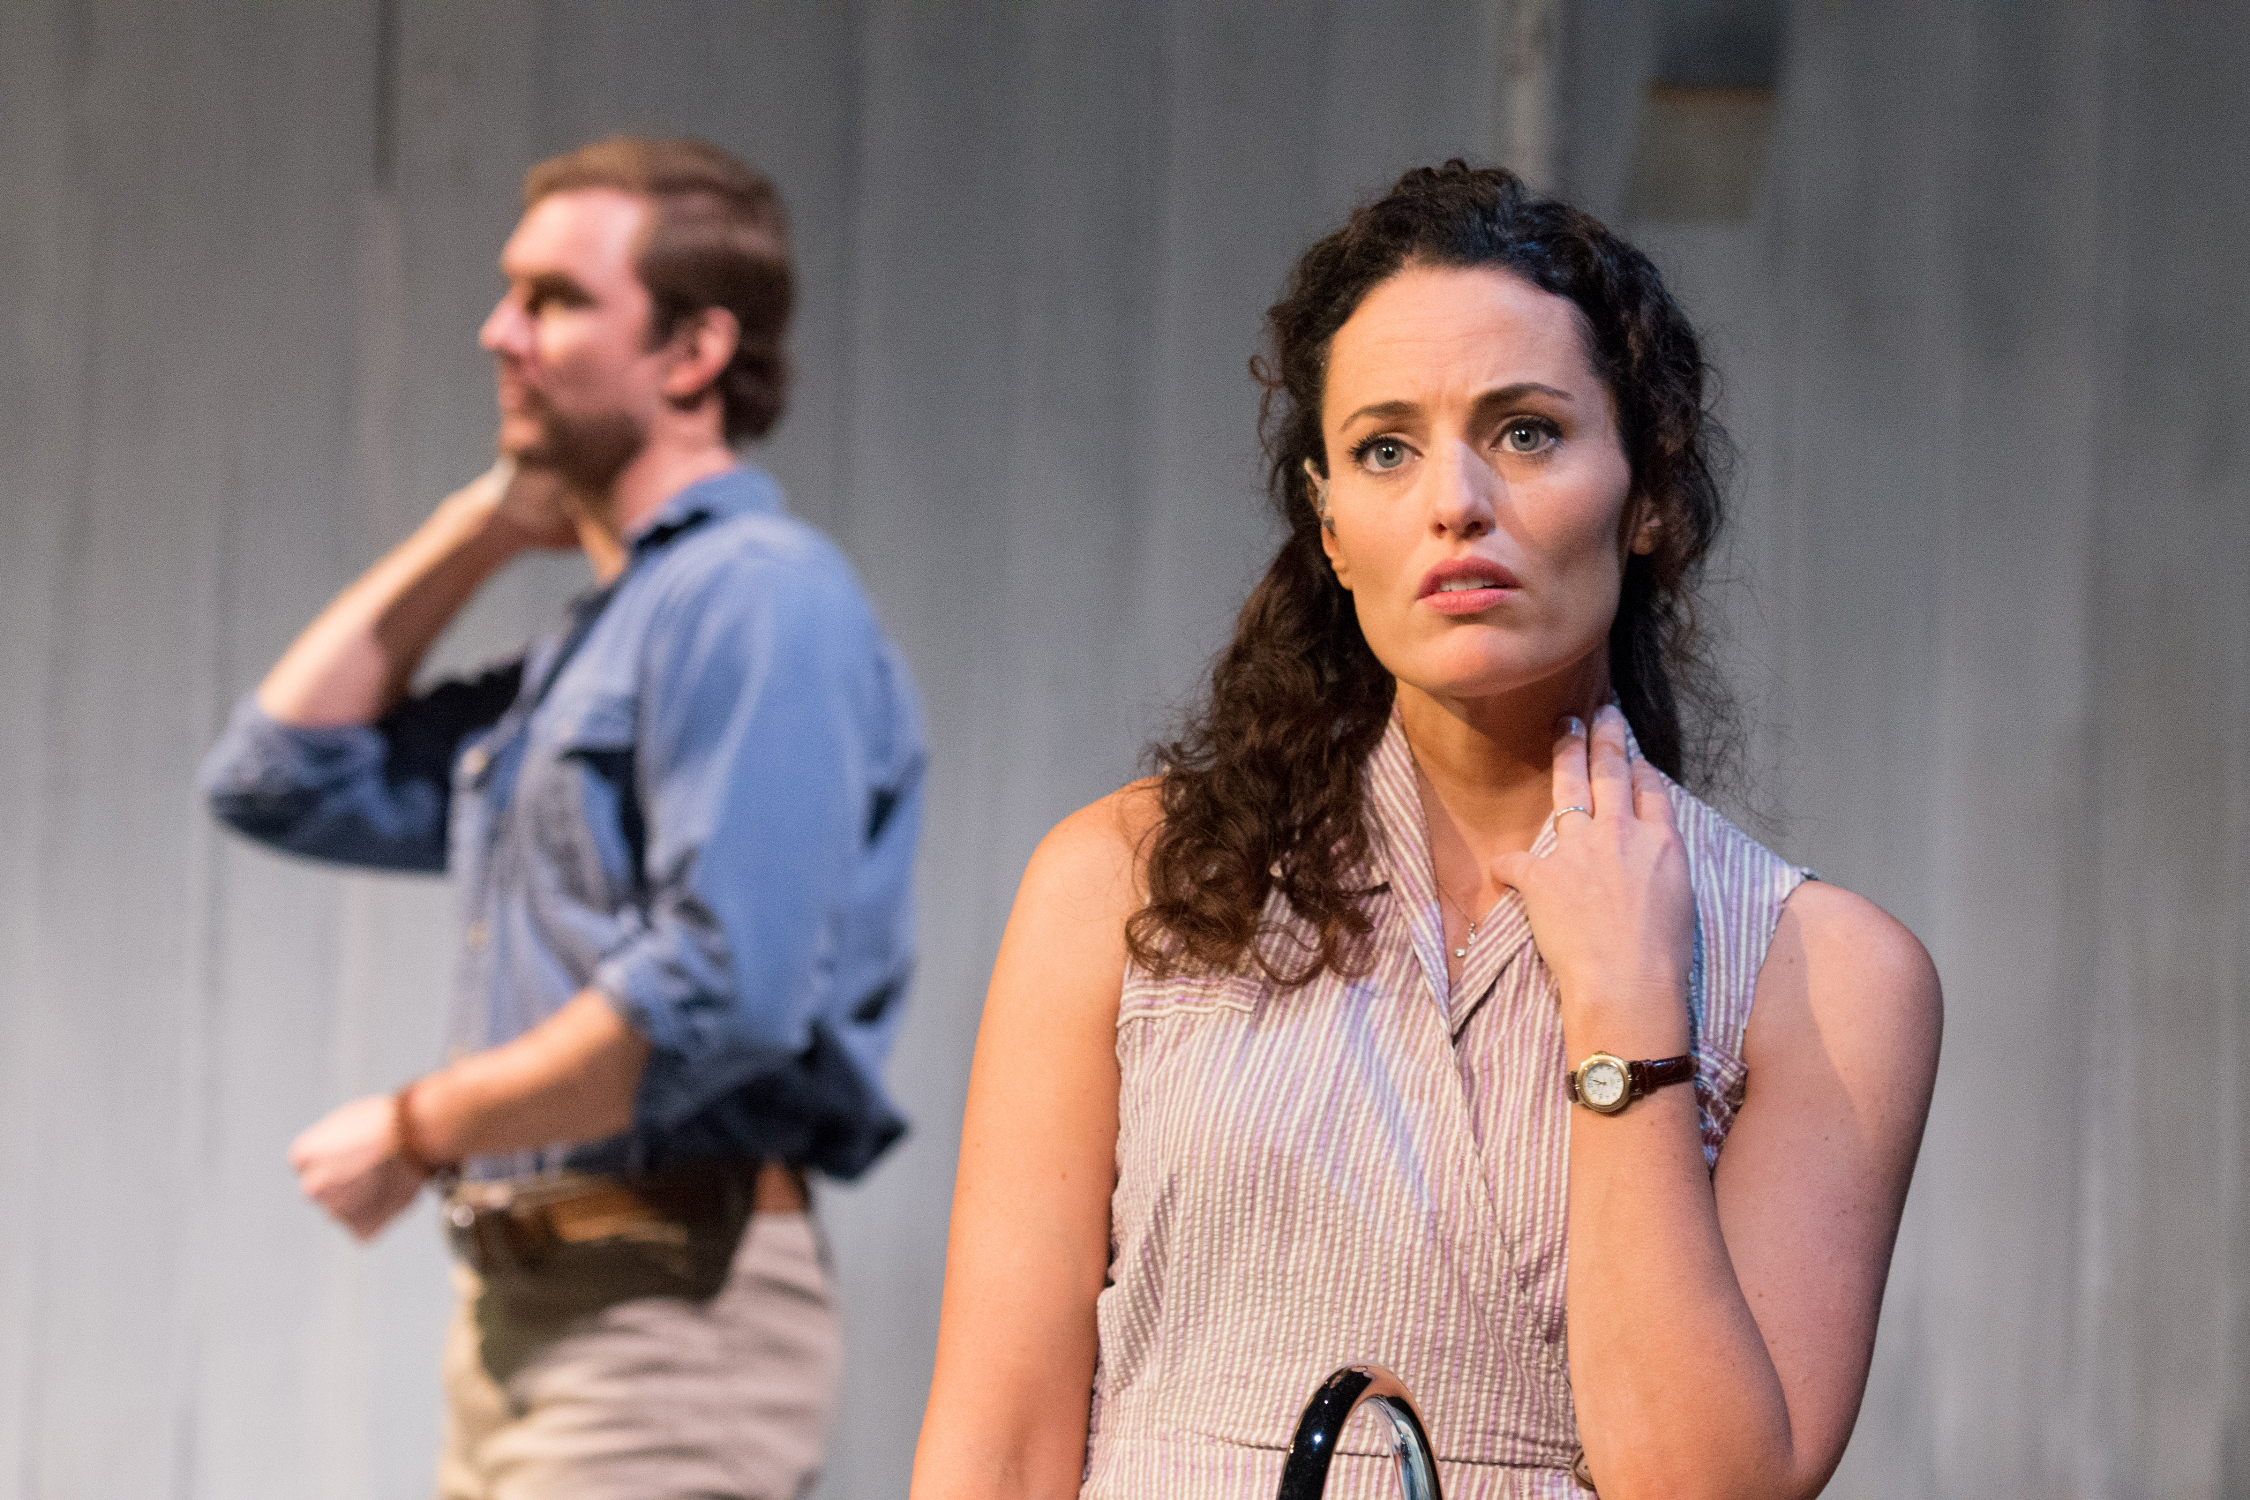 Francesca ( Jennifer Ellis ) watches Robert ( Christiaan Smith ) clean up in  The Bridges of madison county at SpeakEasy Stage Company. Photo by Glenn Perry.